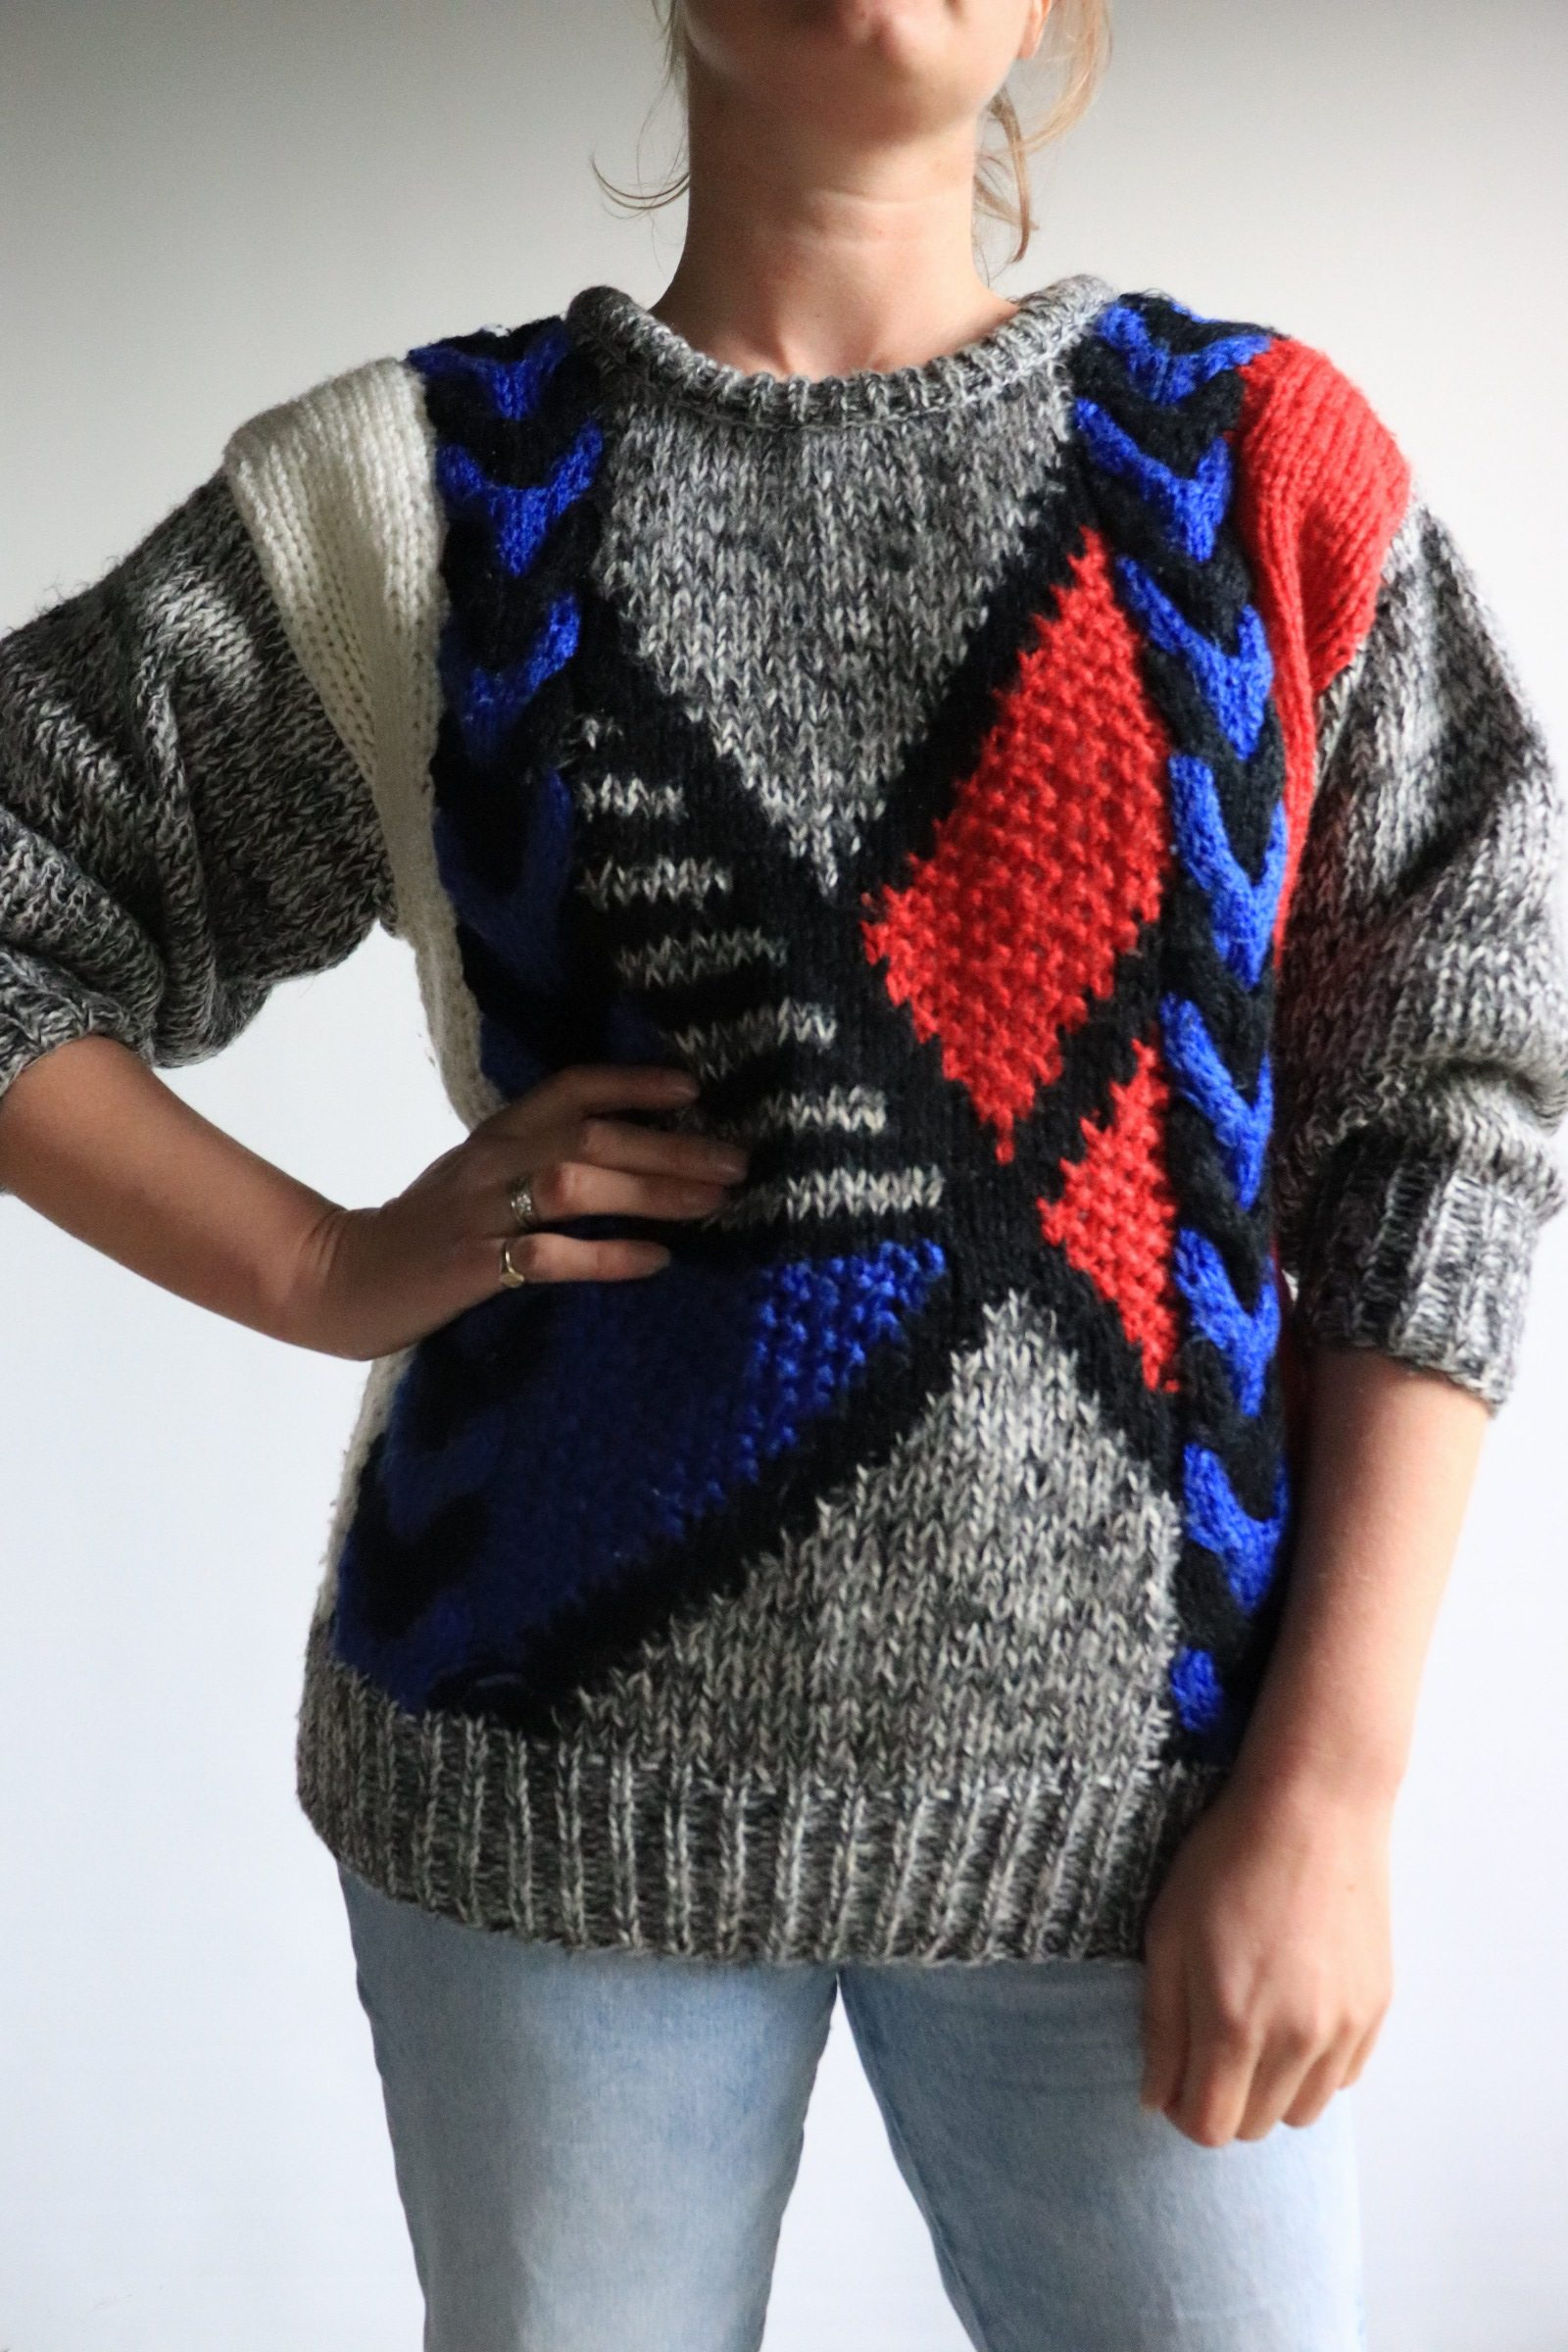 80s knitted jumper